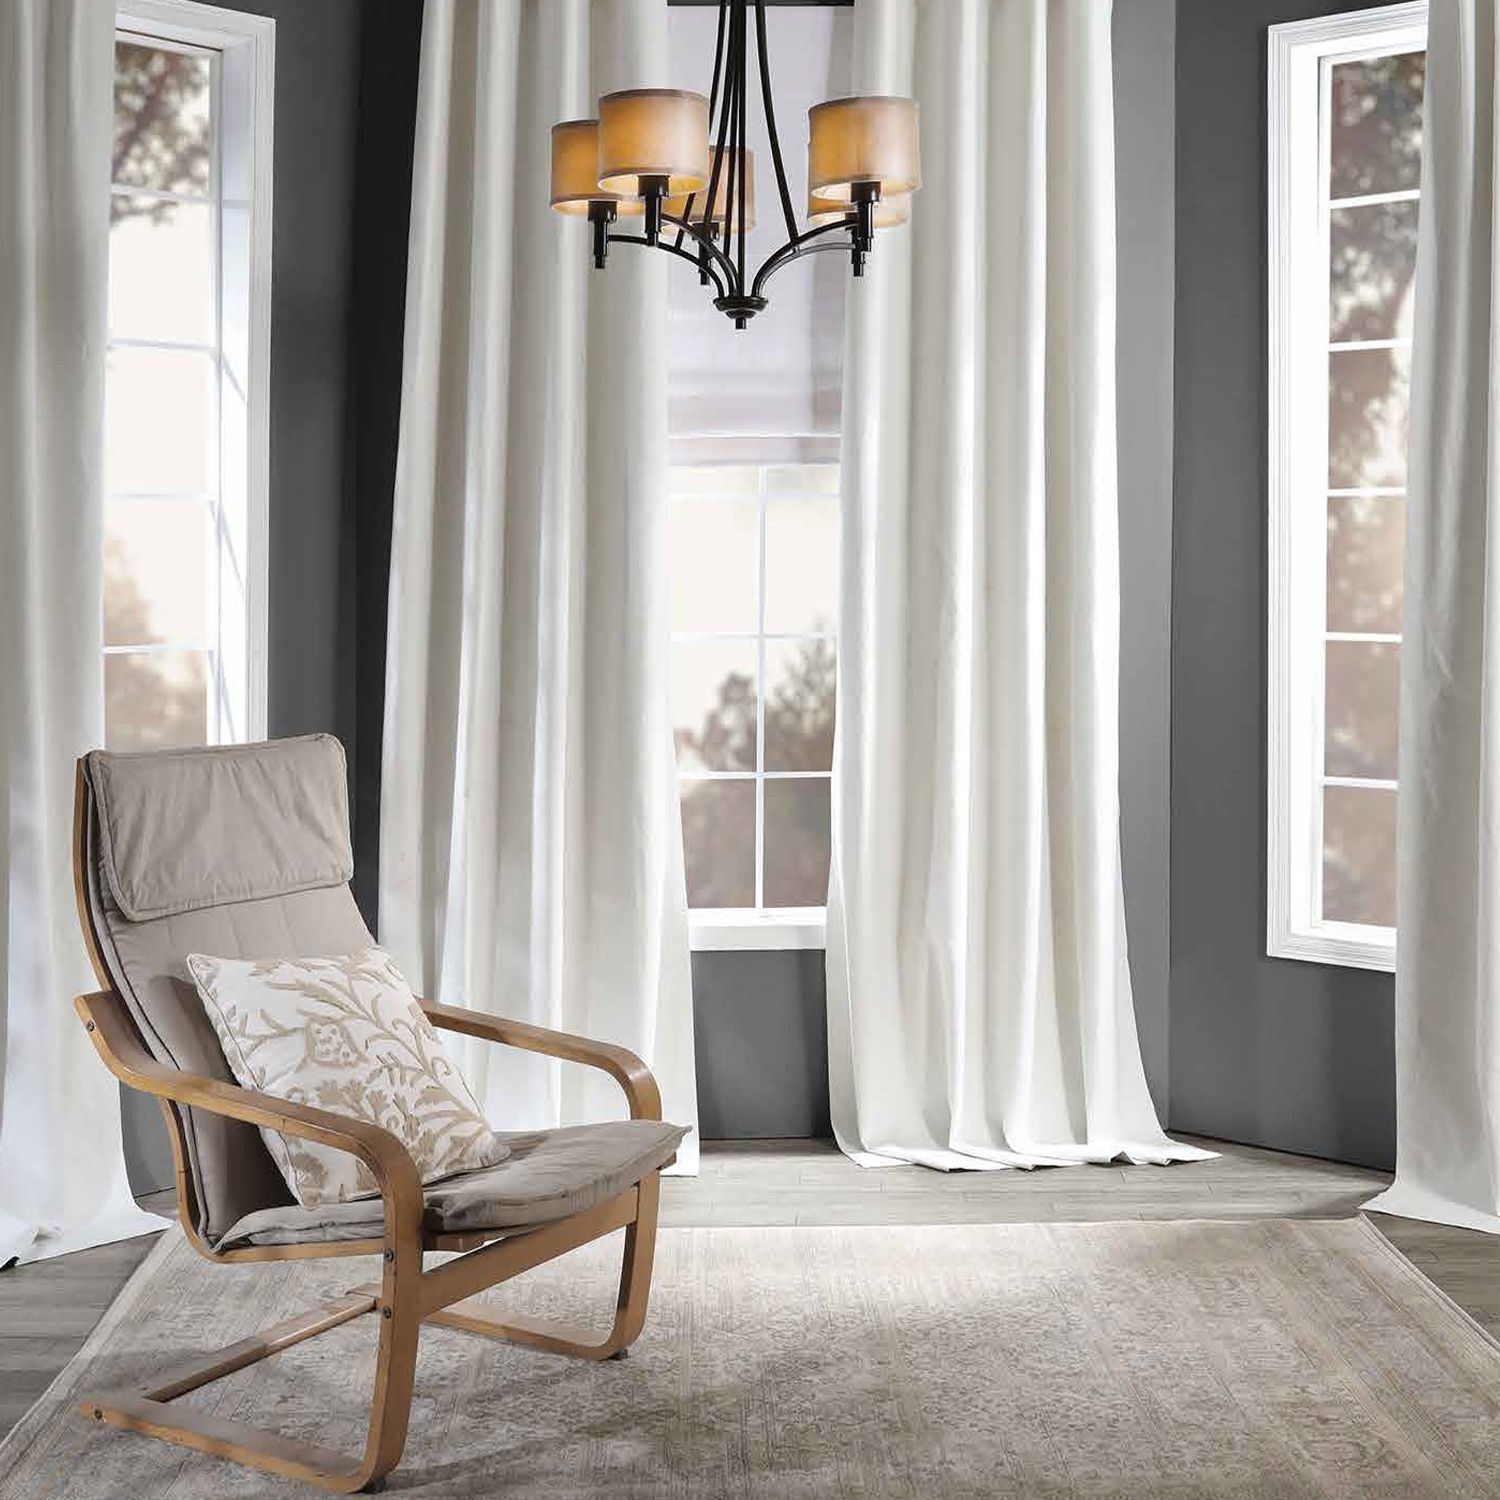 Starlight Off White Vintage Thermal Cross Linen Weave Blackout Curtain Curtains Blackout Curtains White Curtains Off white blackout curtains